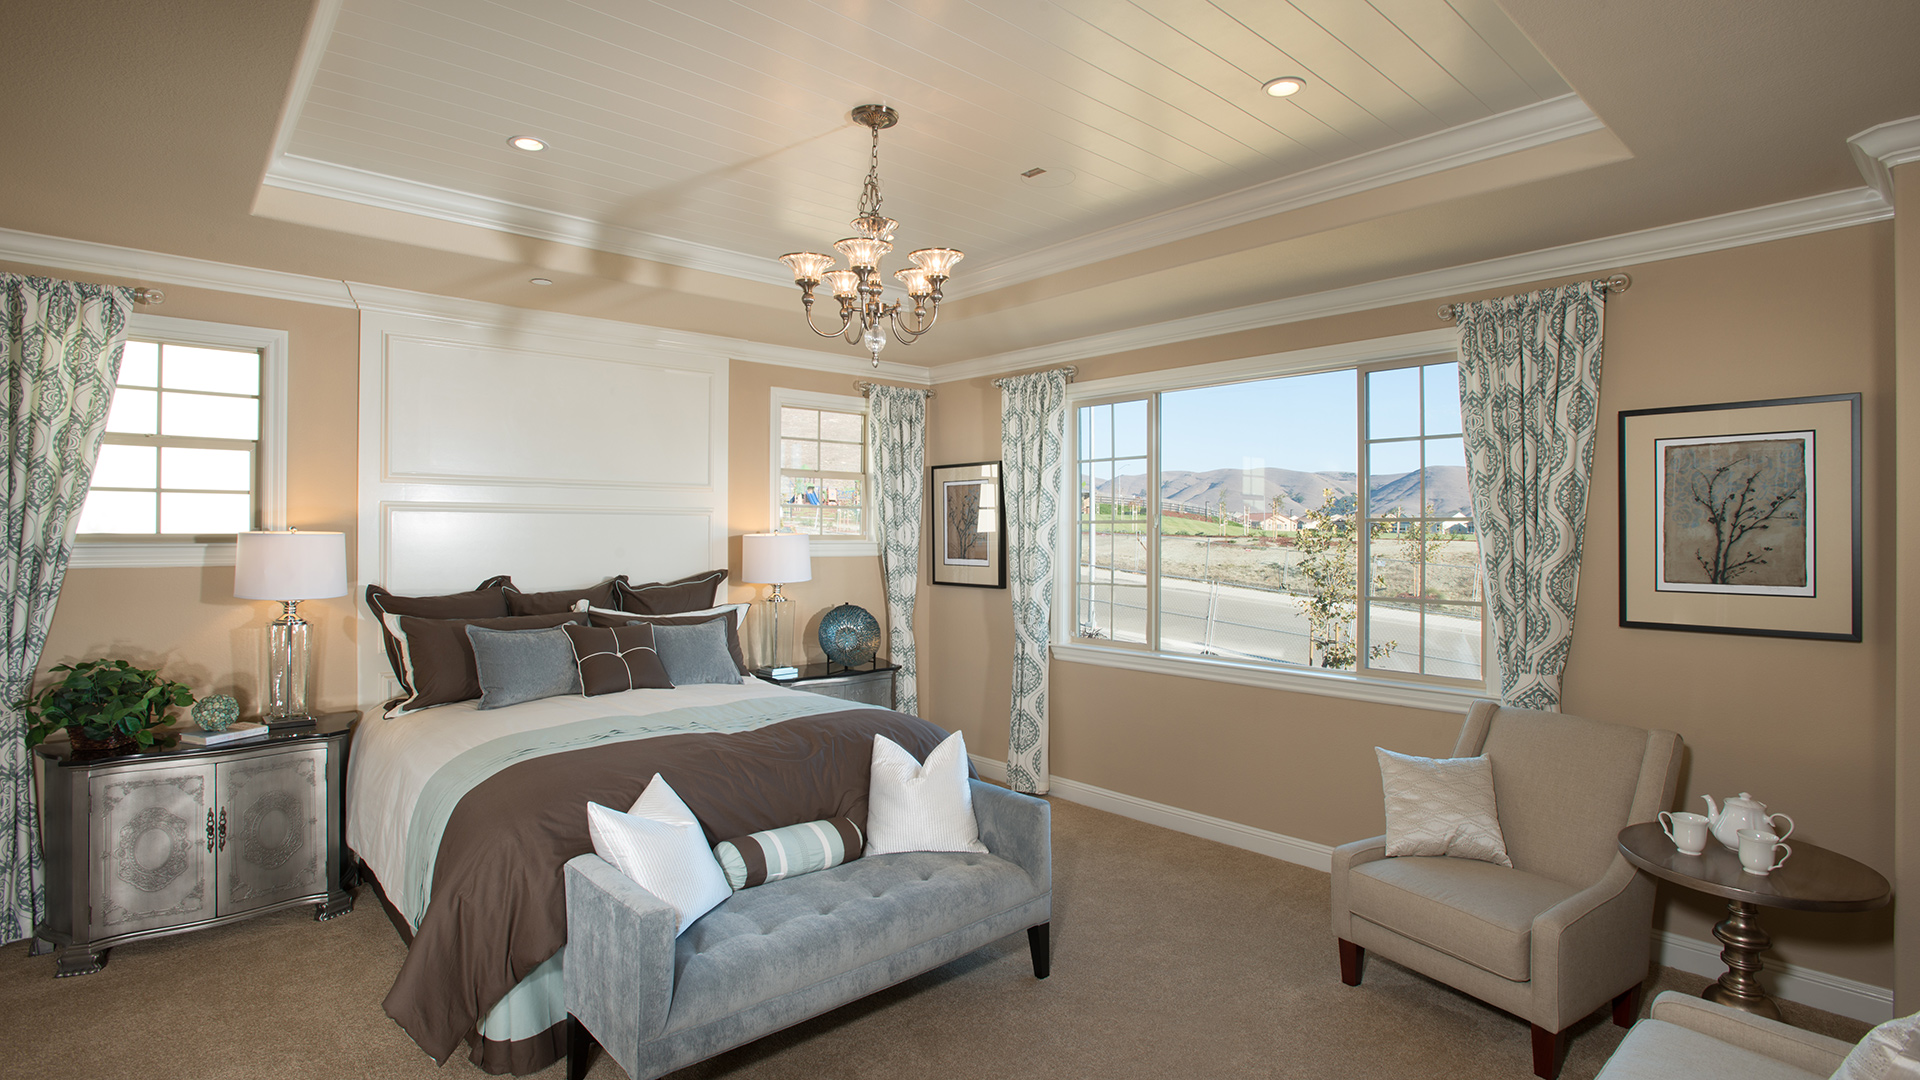 New luxury homes for sale in dublin ca schaefer ranch for Dual master bedroom